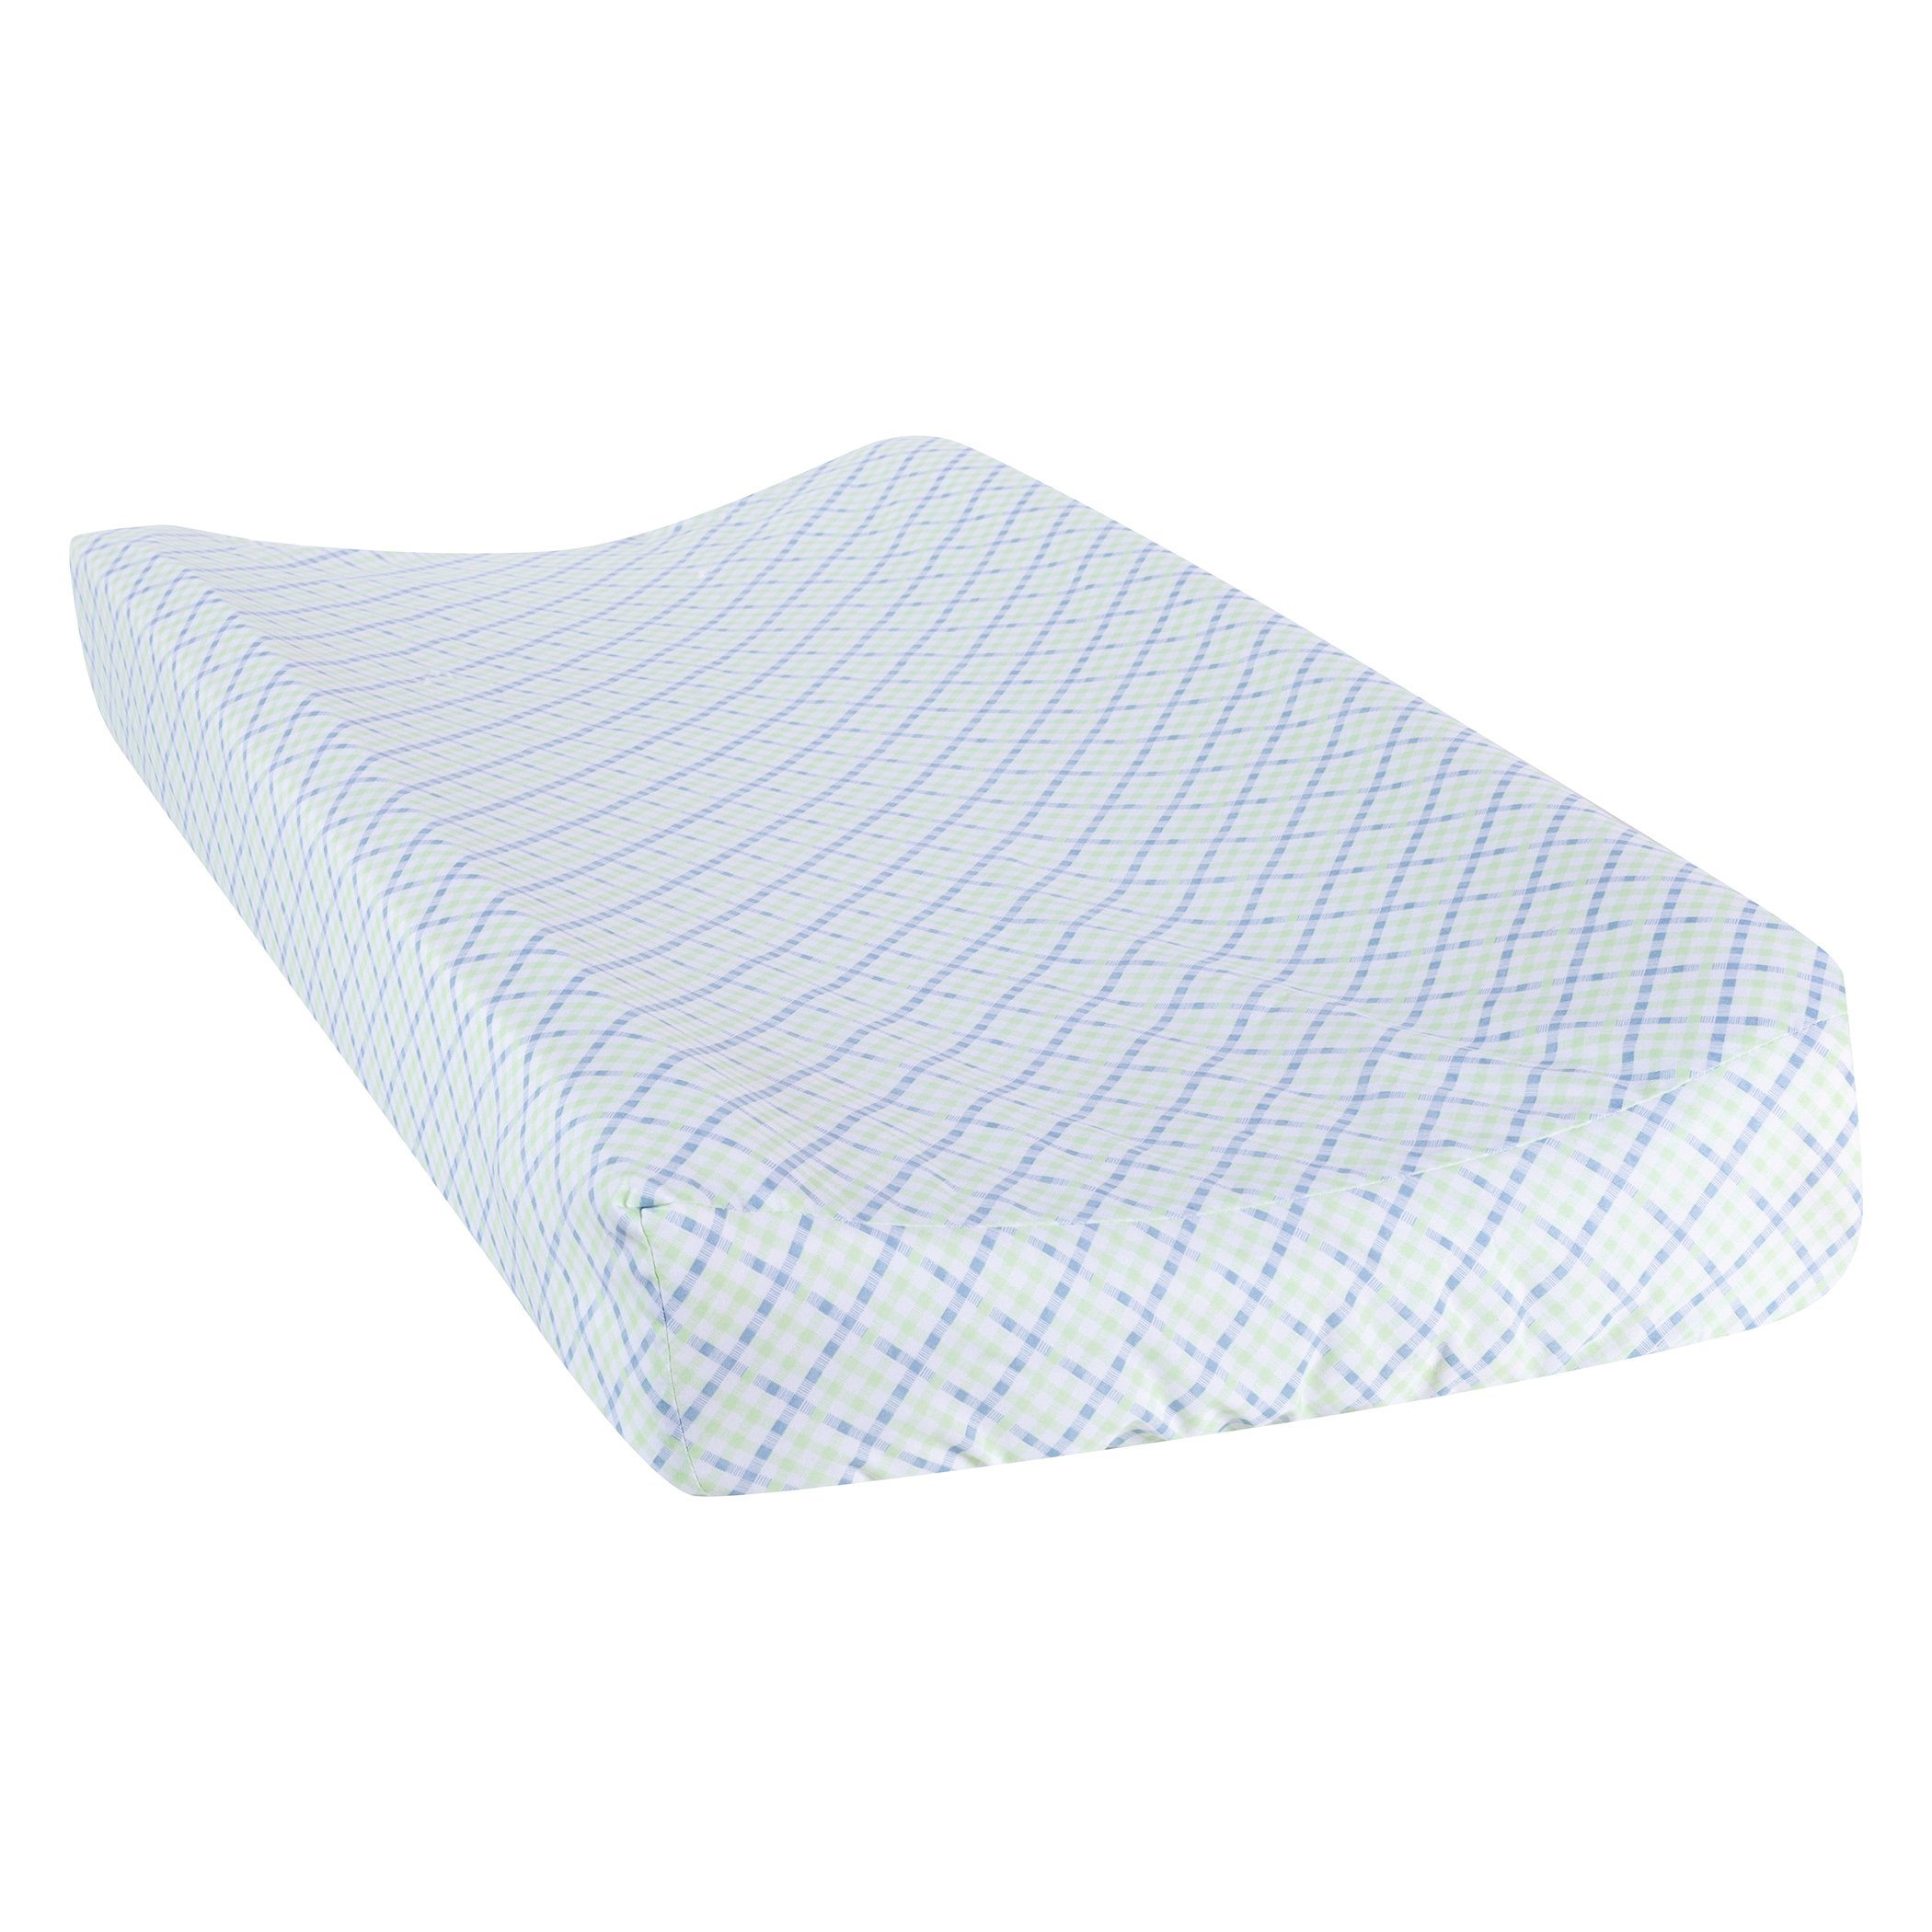 Trend Lab Forest Tales Plaid Changing Pad Cover, White/Blue/Green/Brown, 6 Count